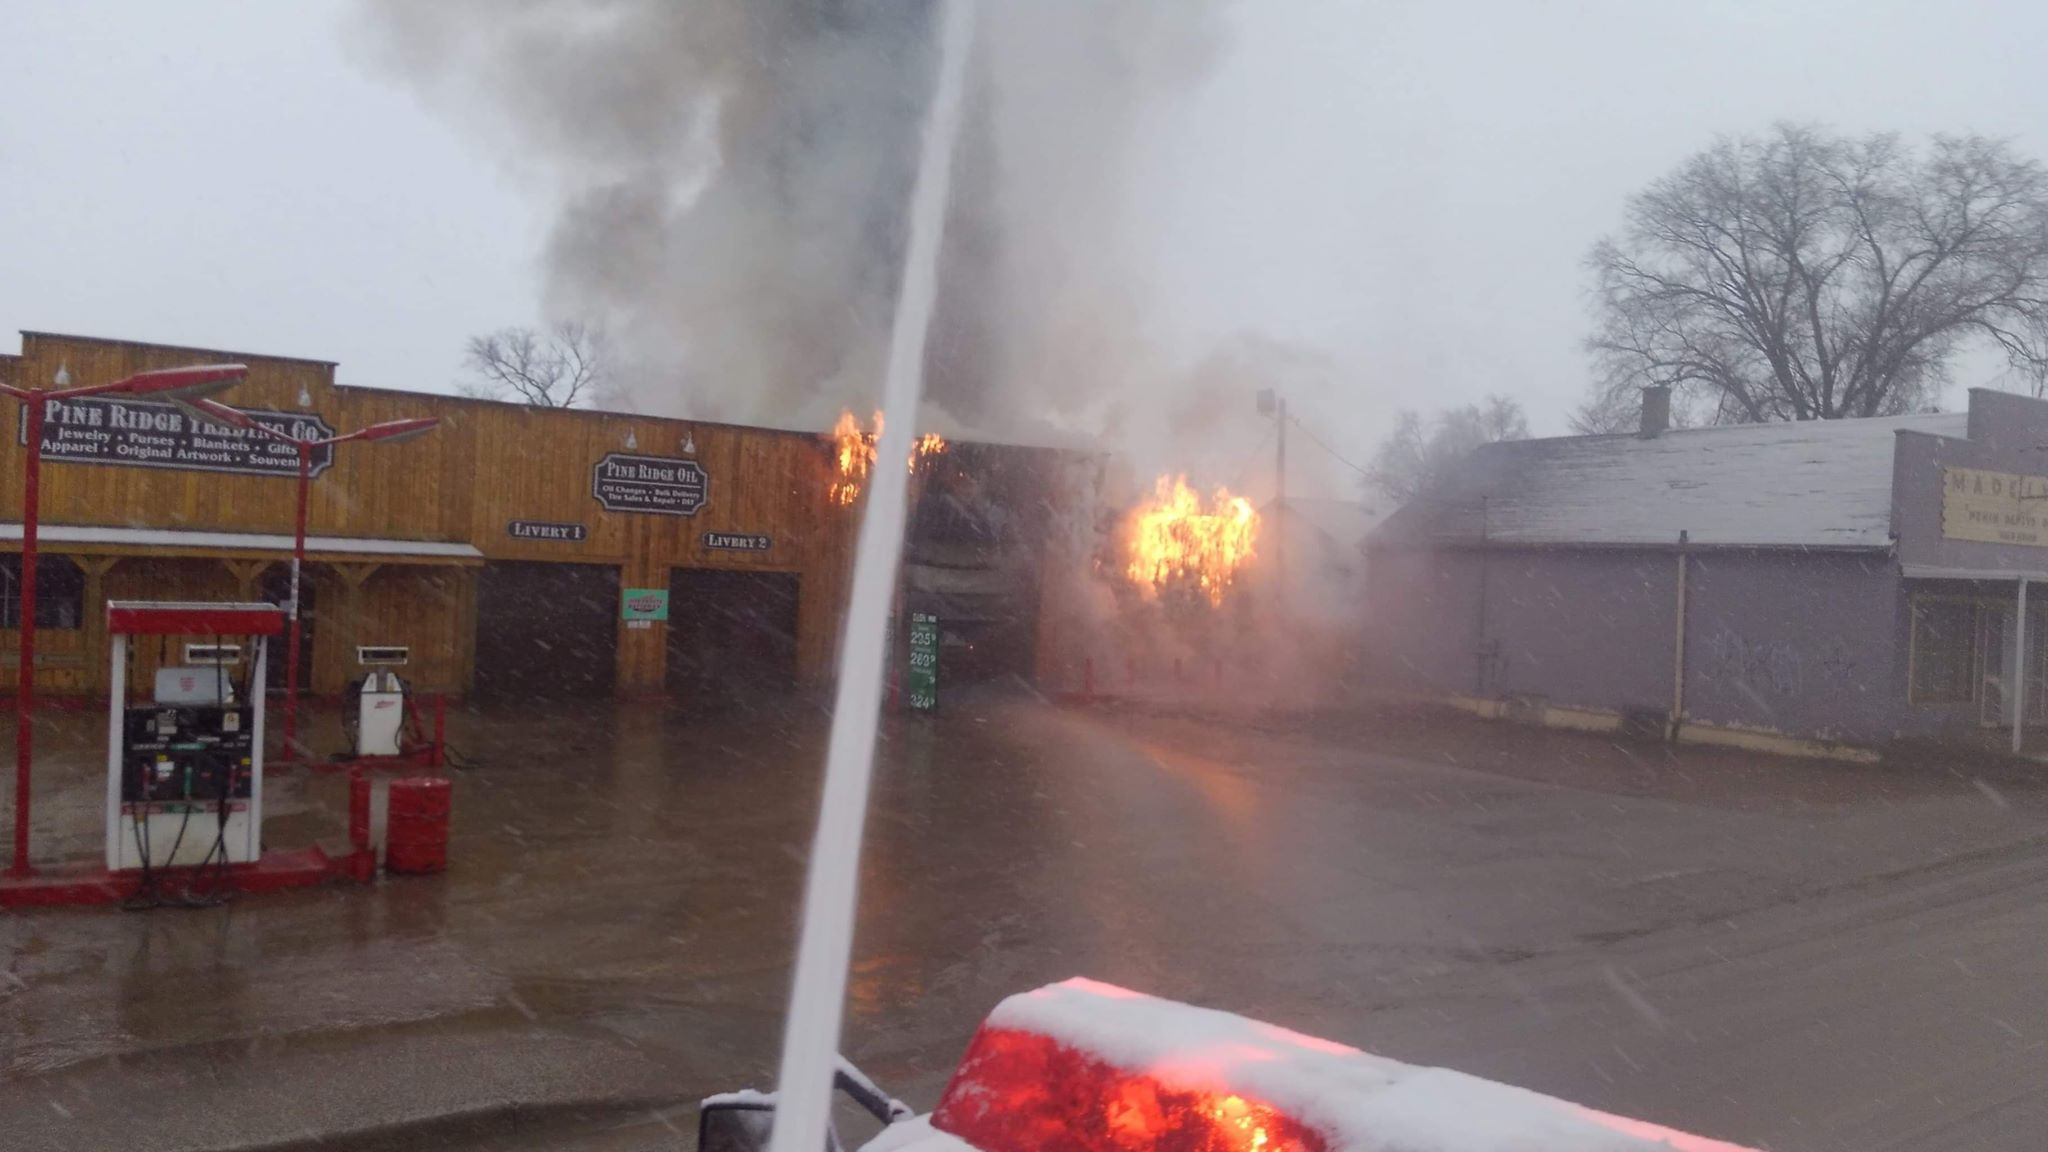 Fire breaks out at Pine Ridge Trading Co  - KNBN NewsCenter1